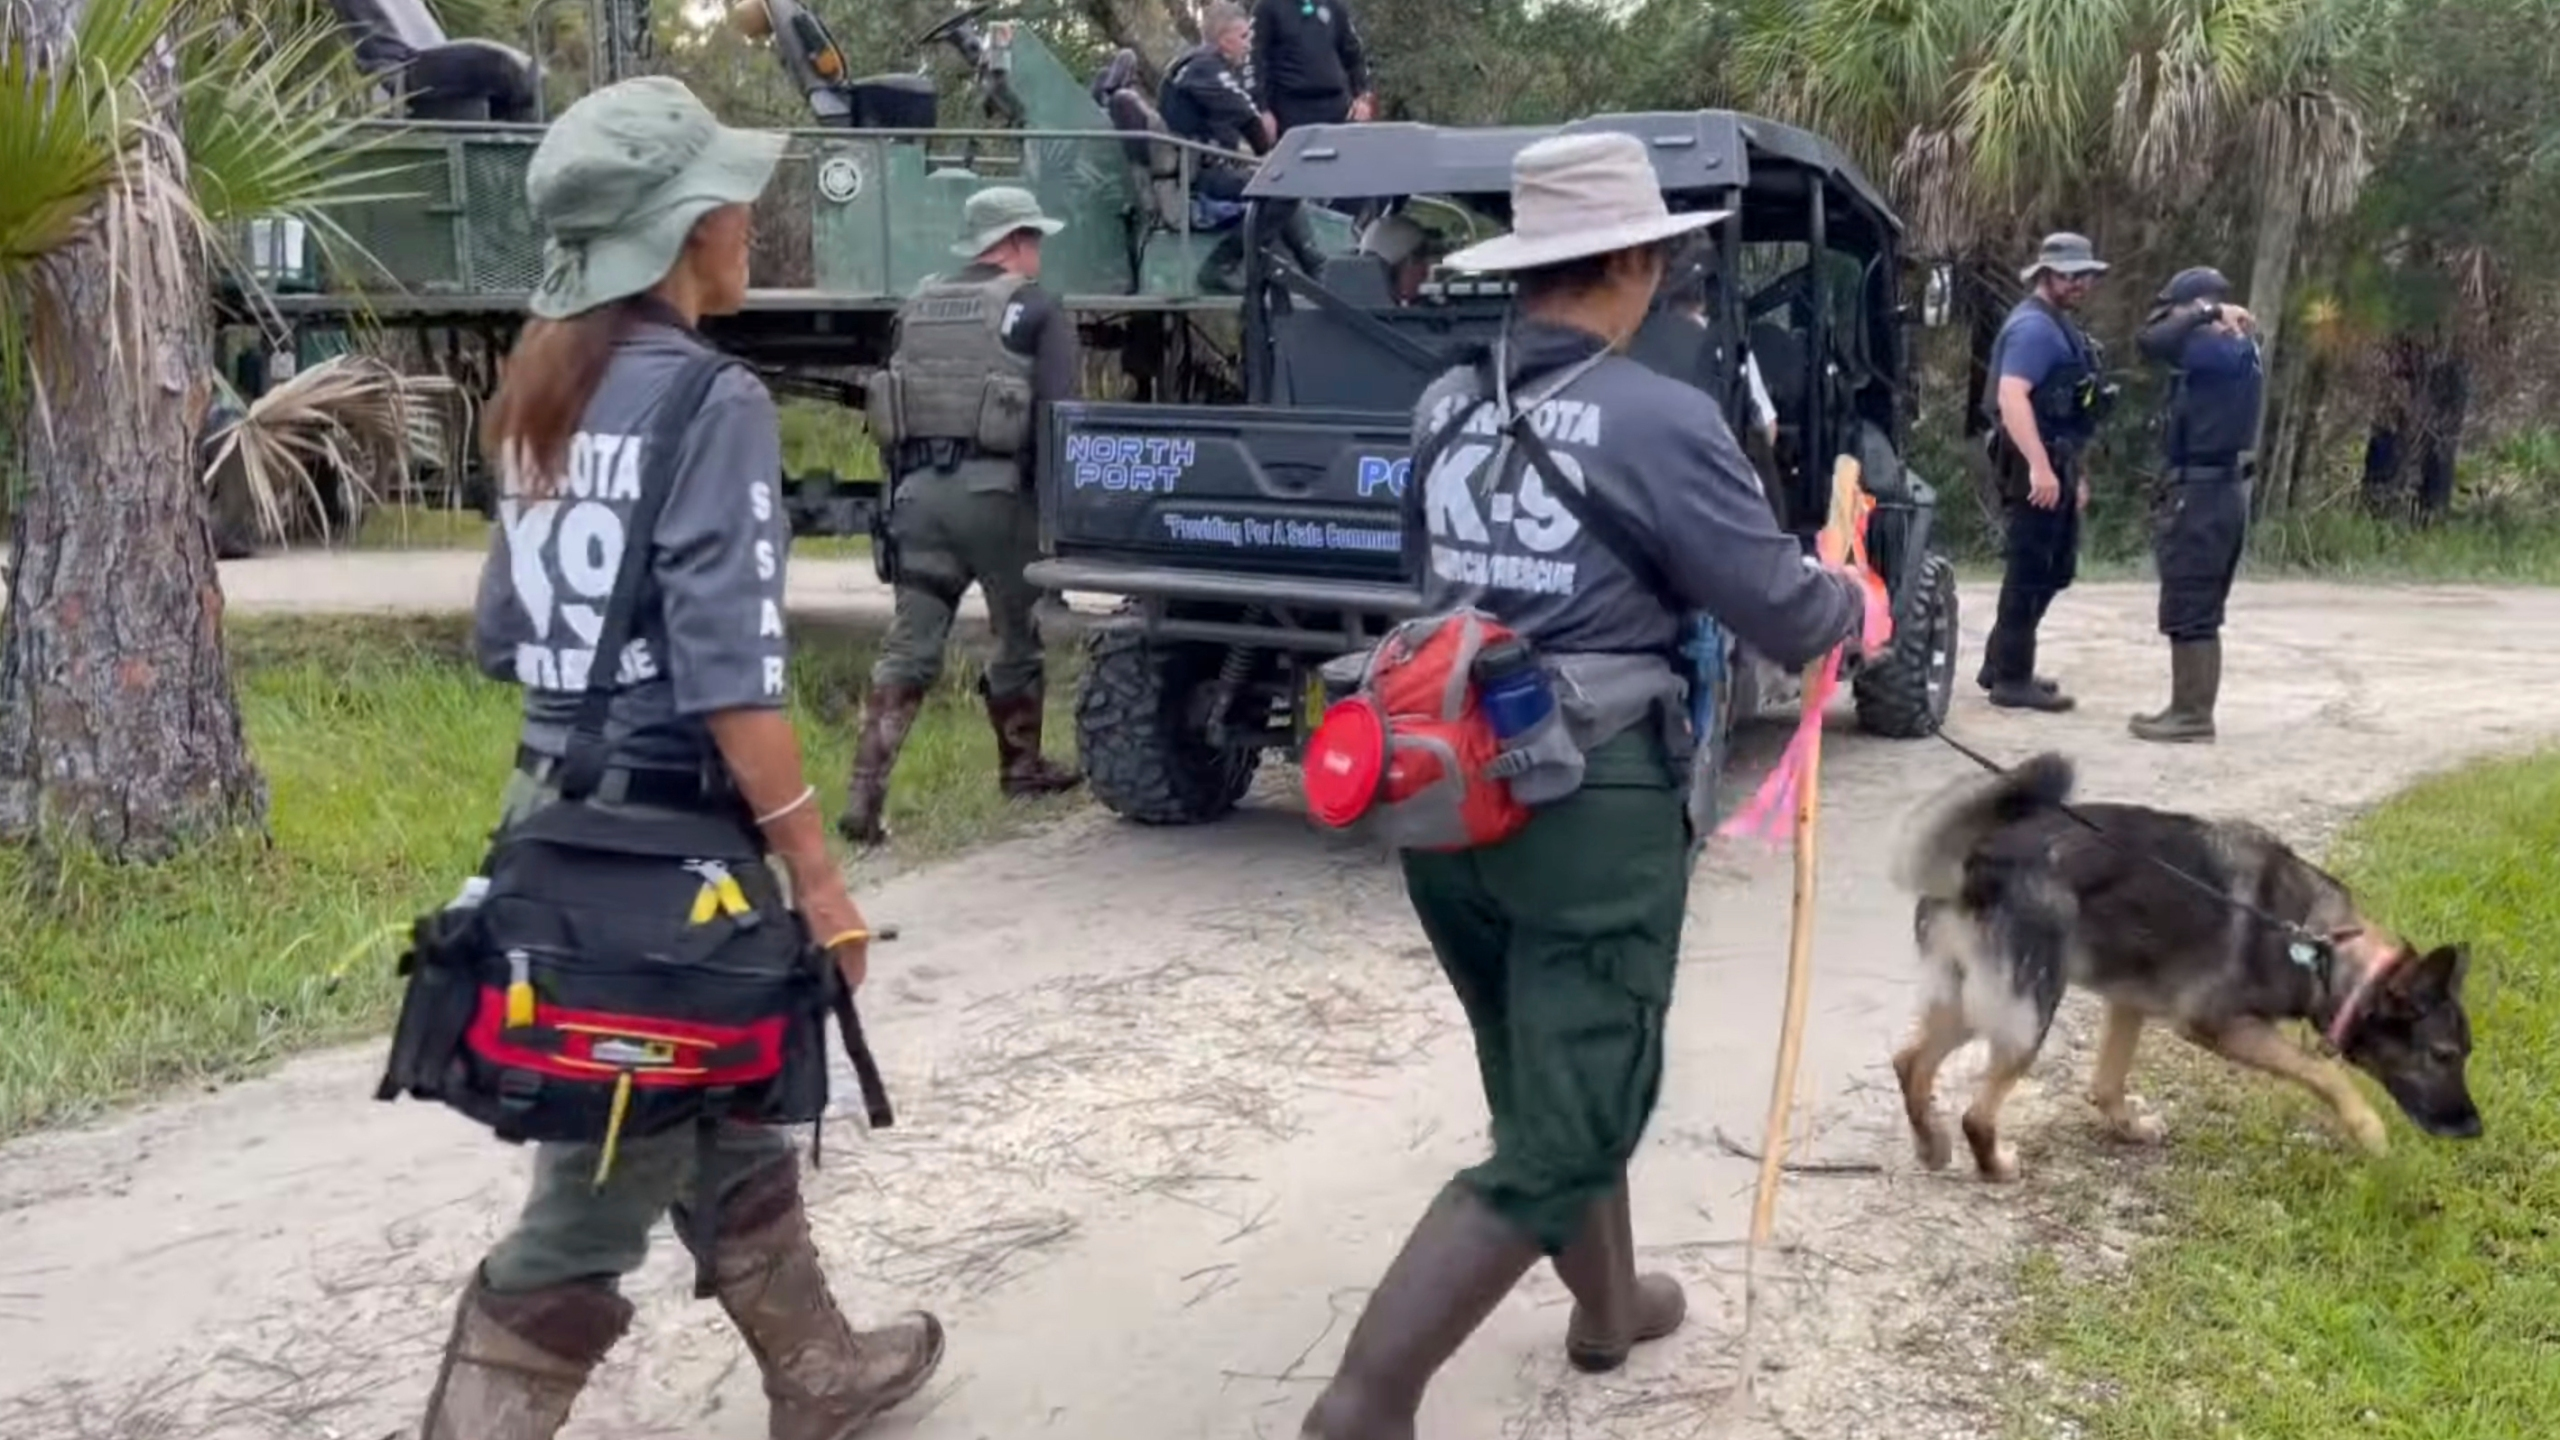 """Search teams fanout at Carlton Reserve park near North Port, Fla., to search for Brian Laundrie, the boyfriend of Gabrielle """"Gabby"""" Petito, on Sept. 22, 2021. (North Port Police Department via Associated Press)"""